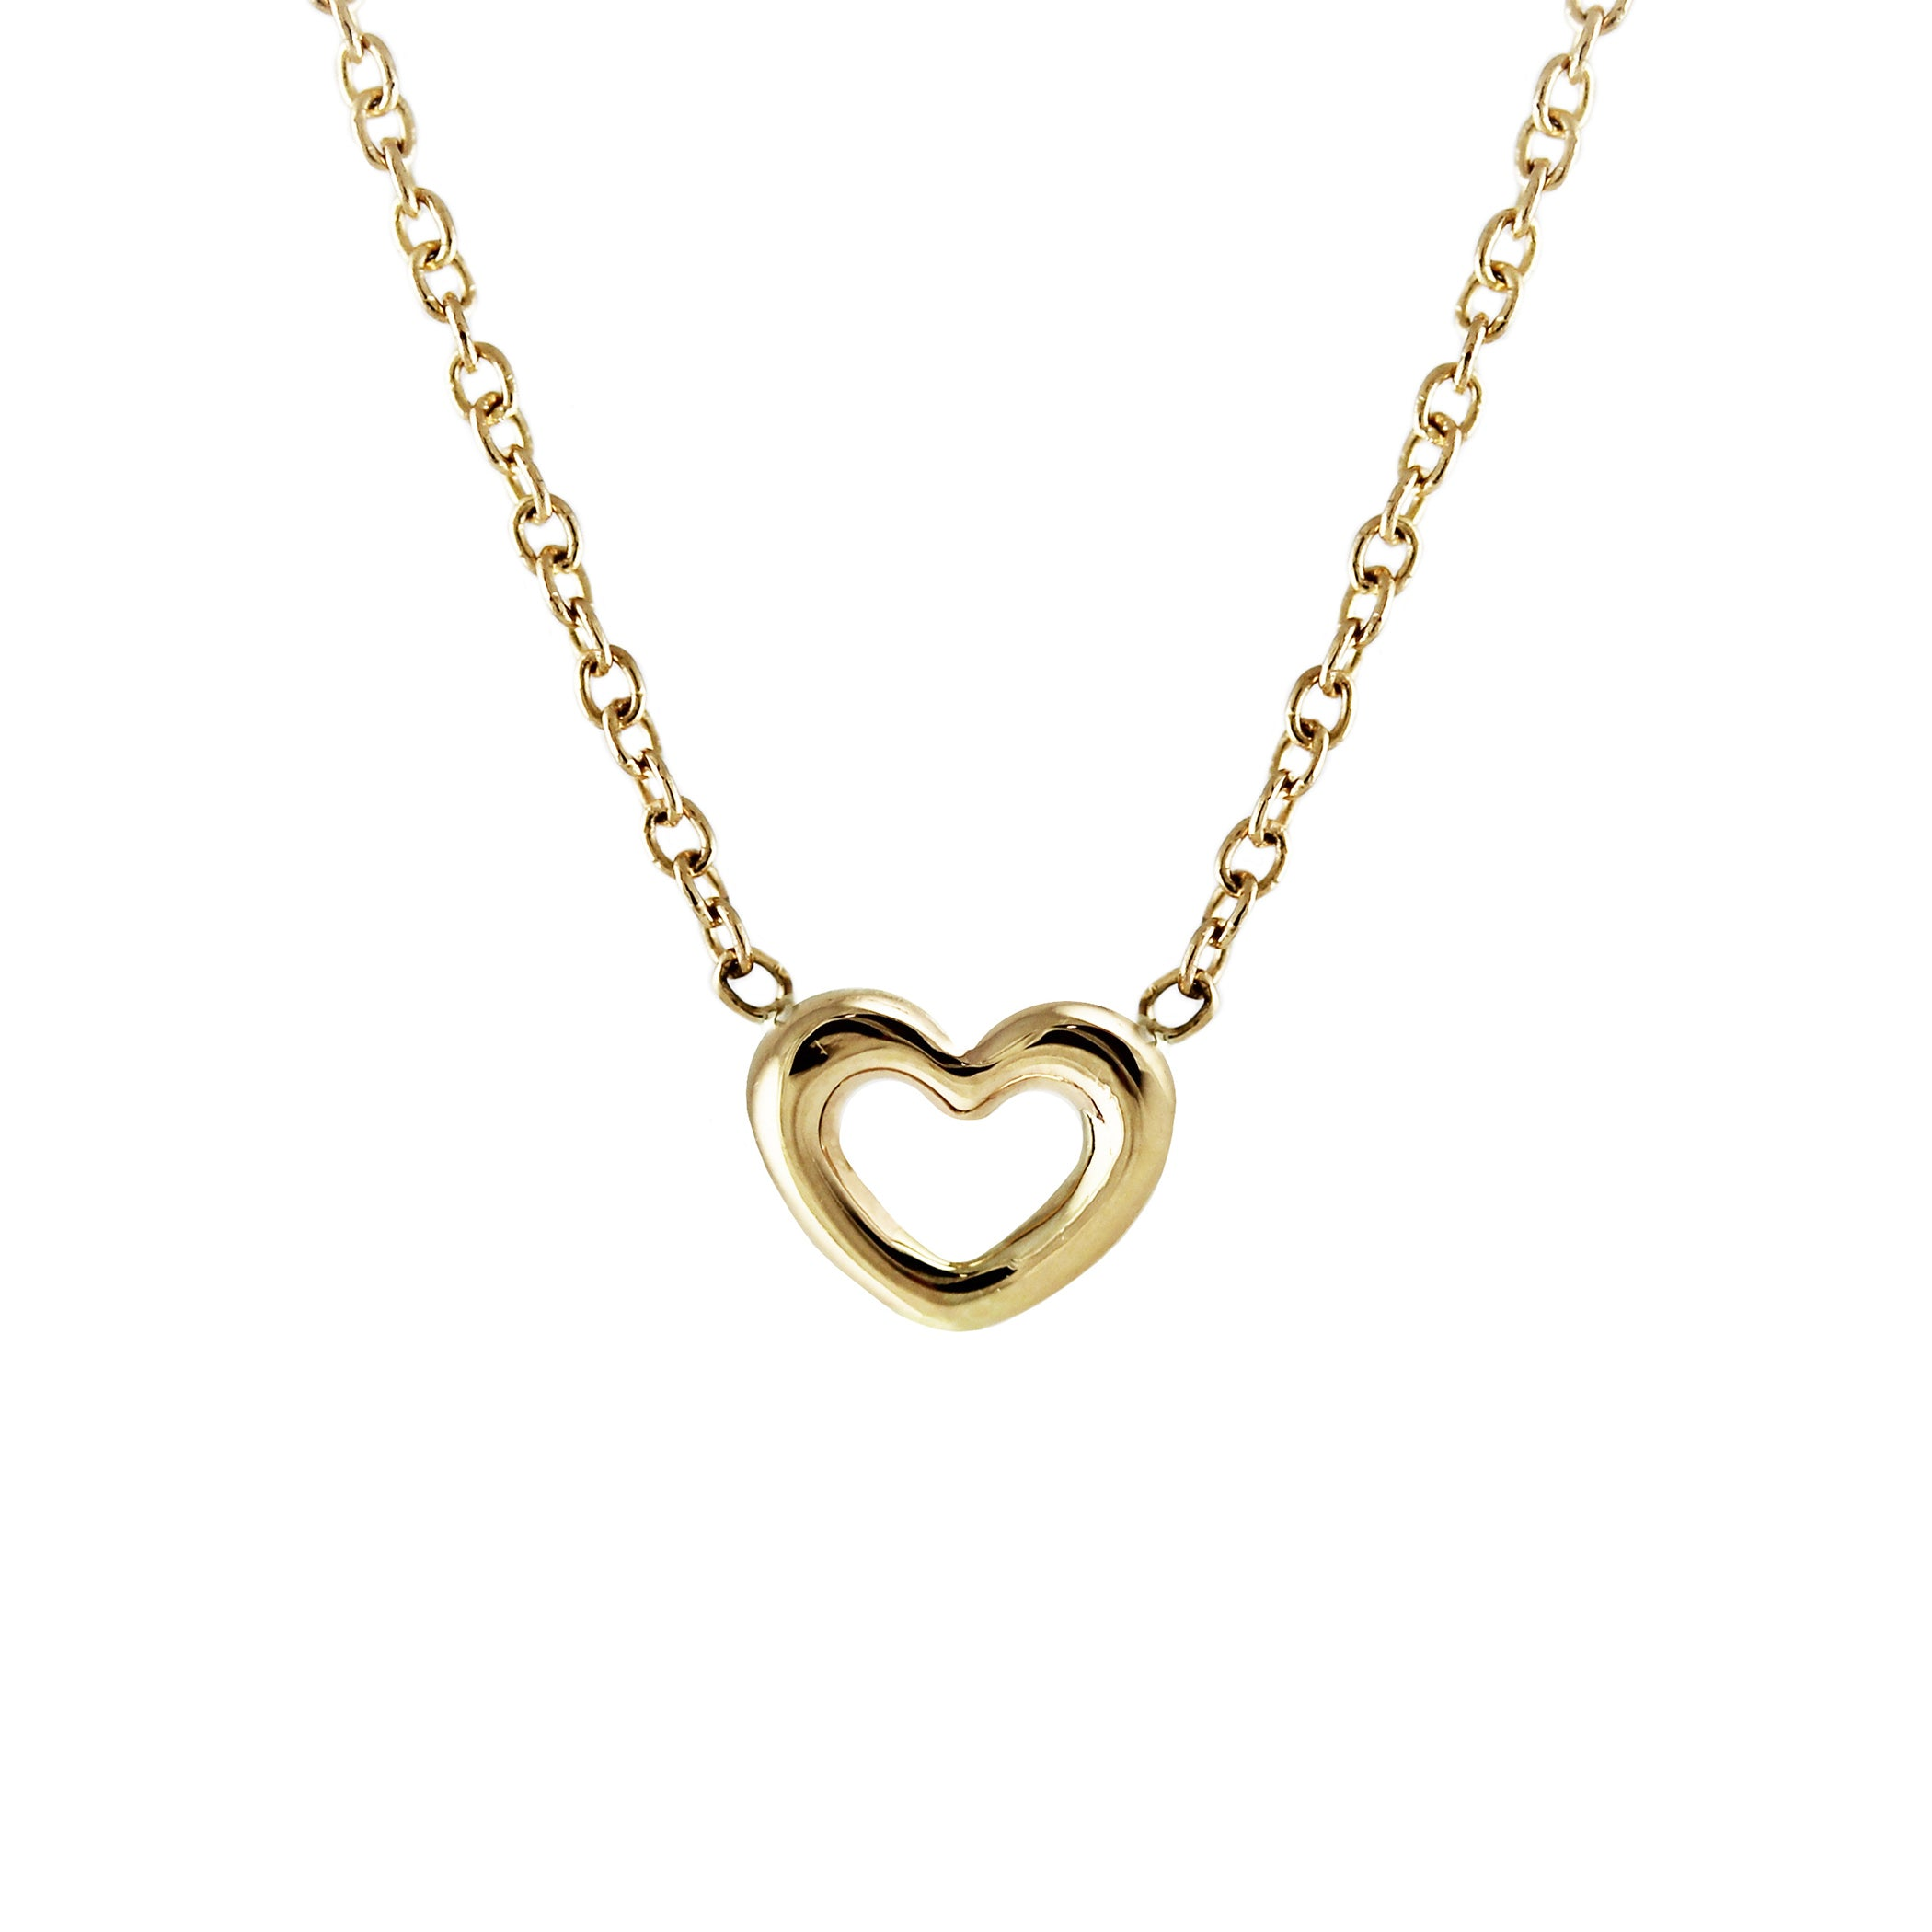 jewellery melissa harris shopify mini products heart diamond white gold necklace